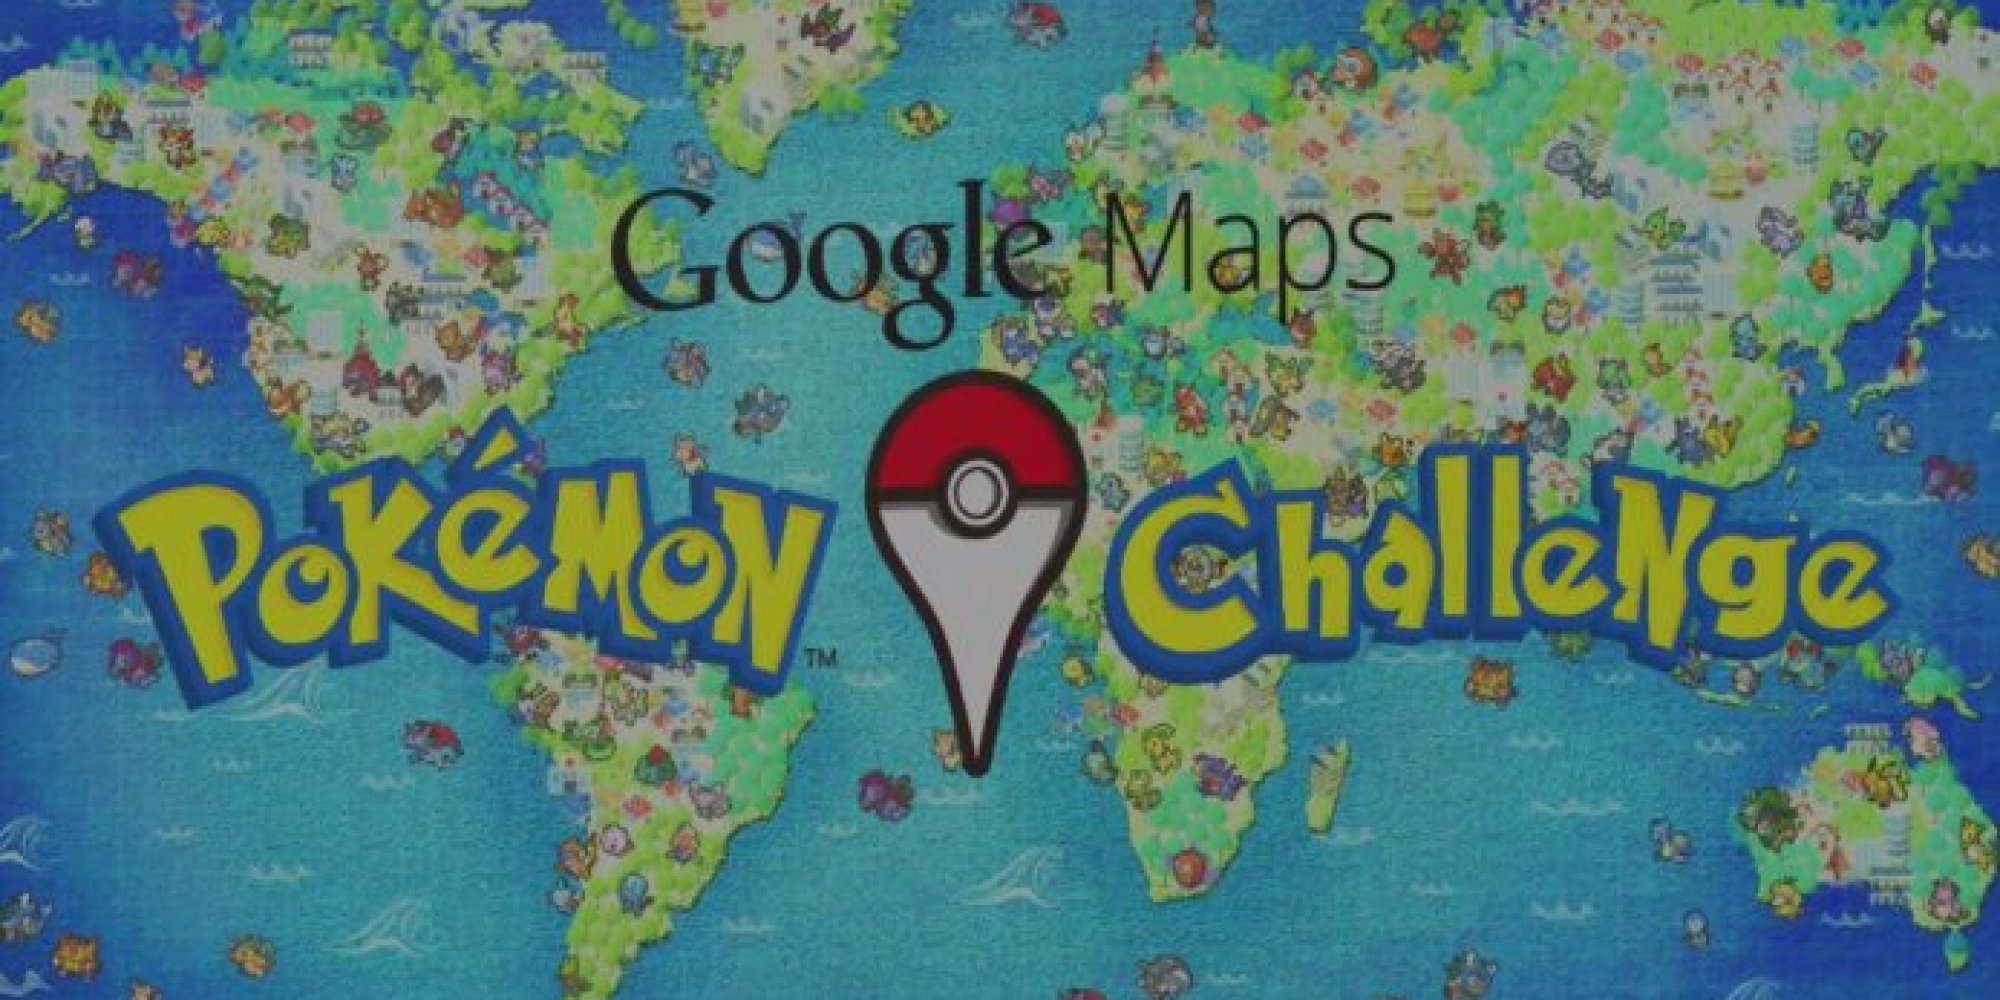 Google Maps Is Taken Over By Pok    mon In April Fools  Prank   HuffPost